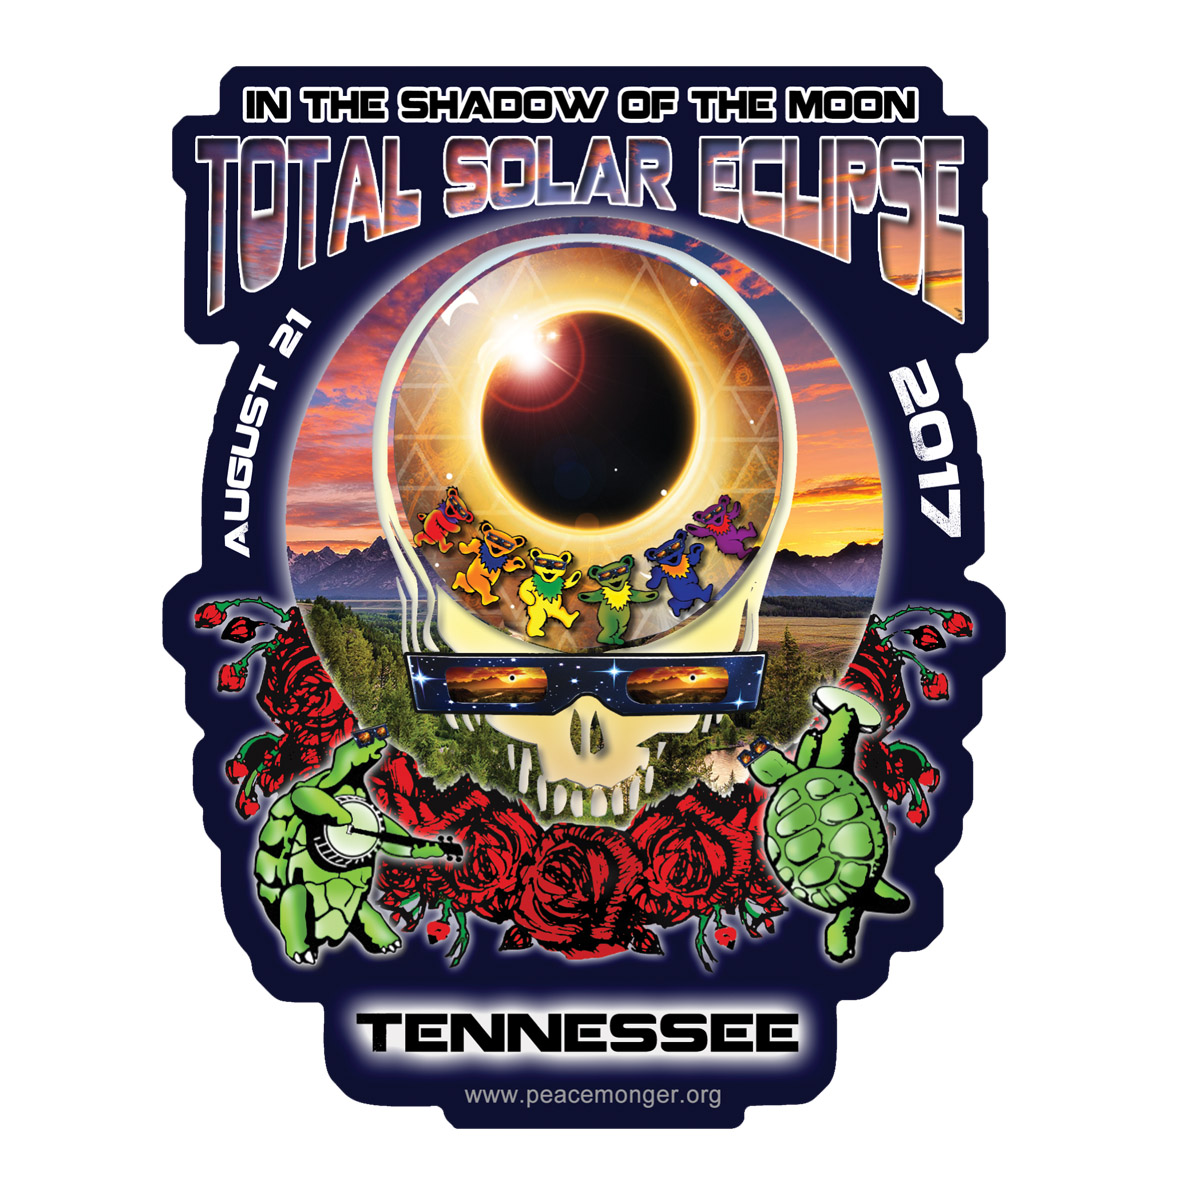 f233a63ea Home > Shop by Item > Stickers > Full Color Bumper Stickers > EC020 -  Tennessee Eclipse Your Face Grateful Dead Total Solar Eclipse 2017 Sticker